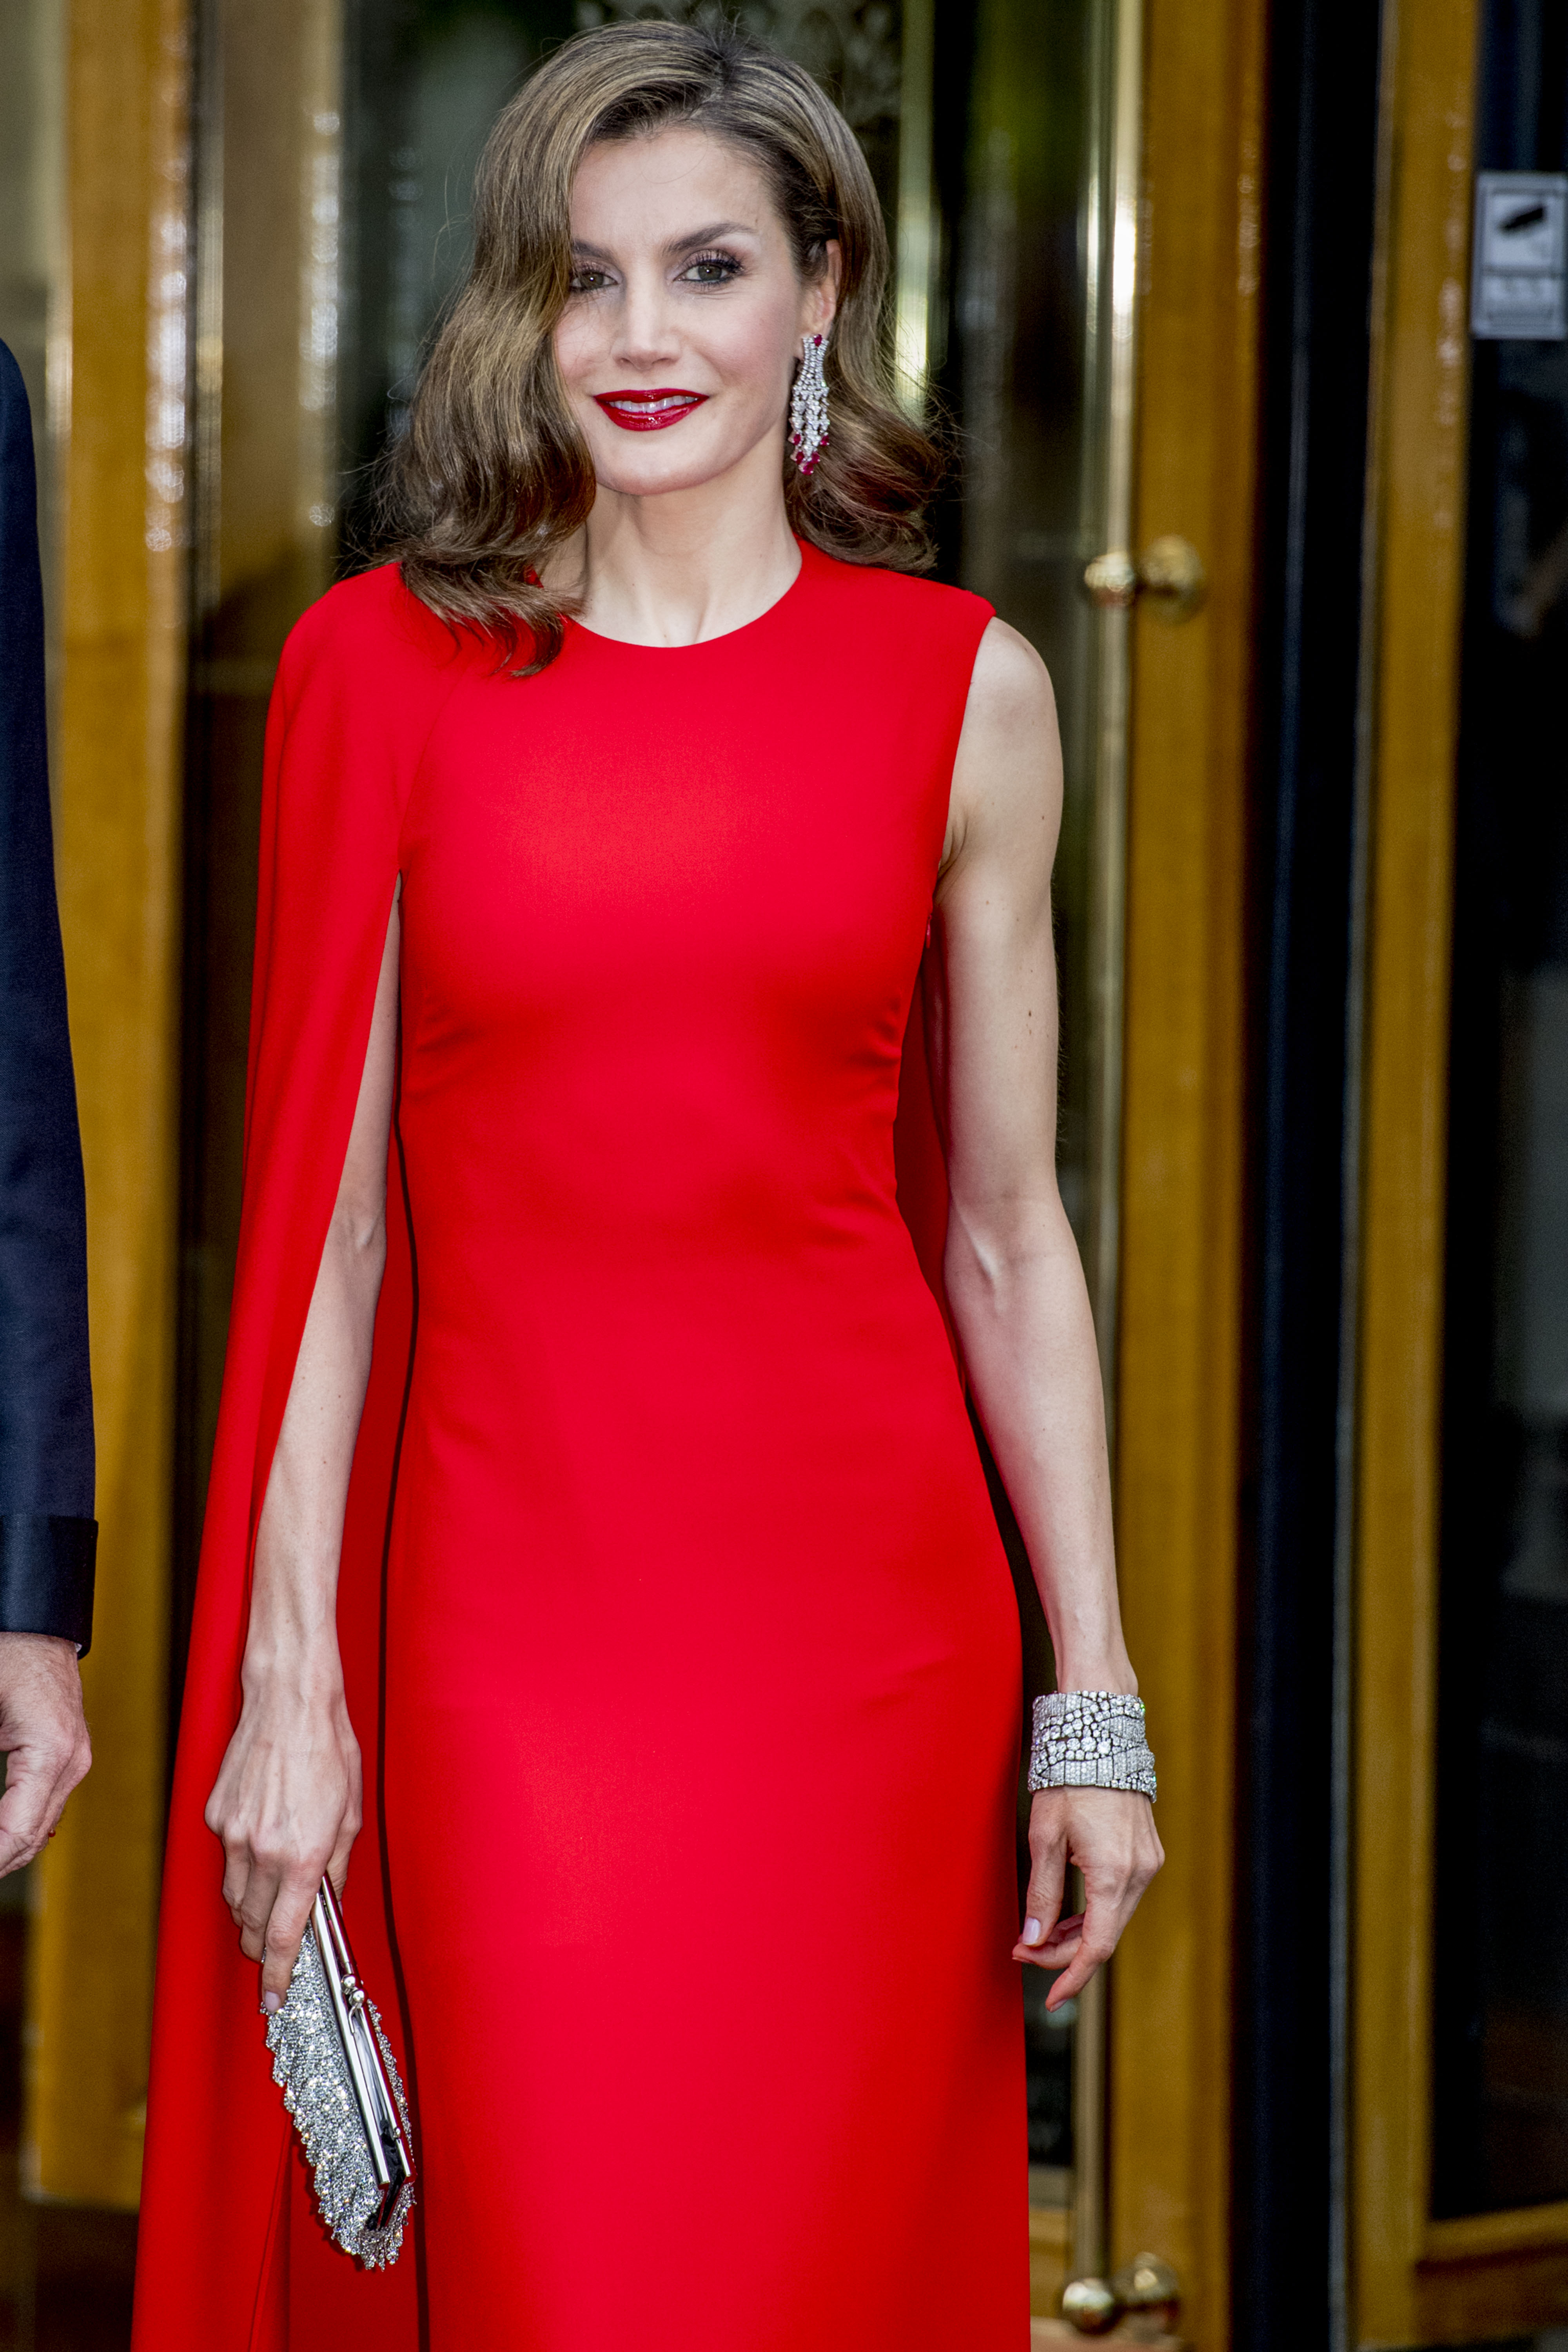 King felipe and queen letizia of Spain depart for the birthday party 50 years for king Willem Alexander